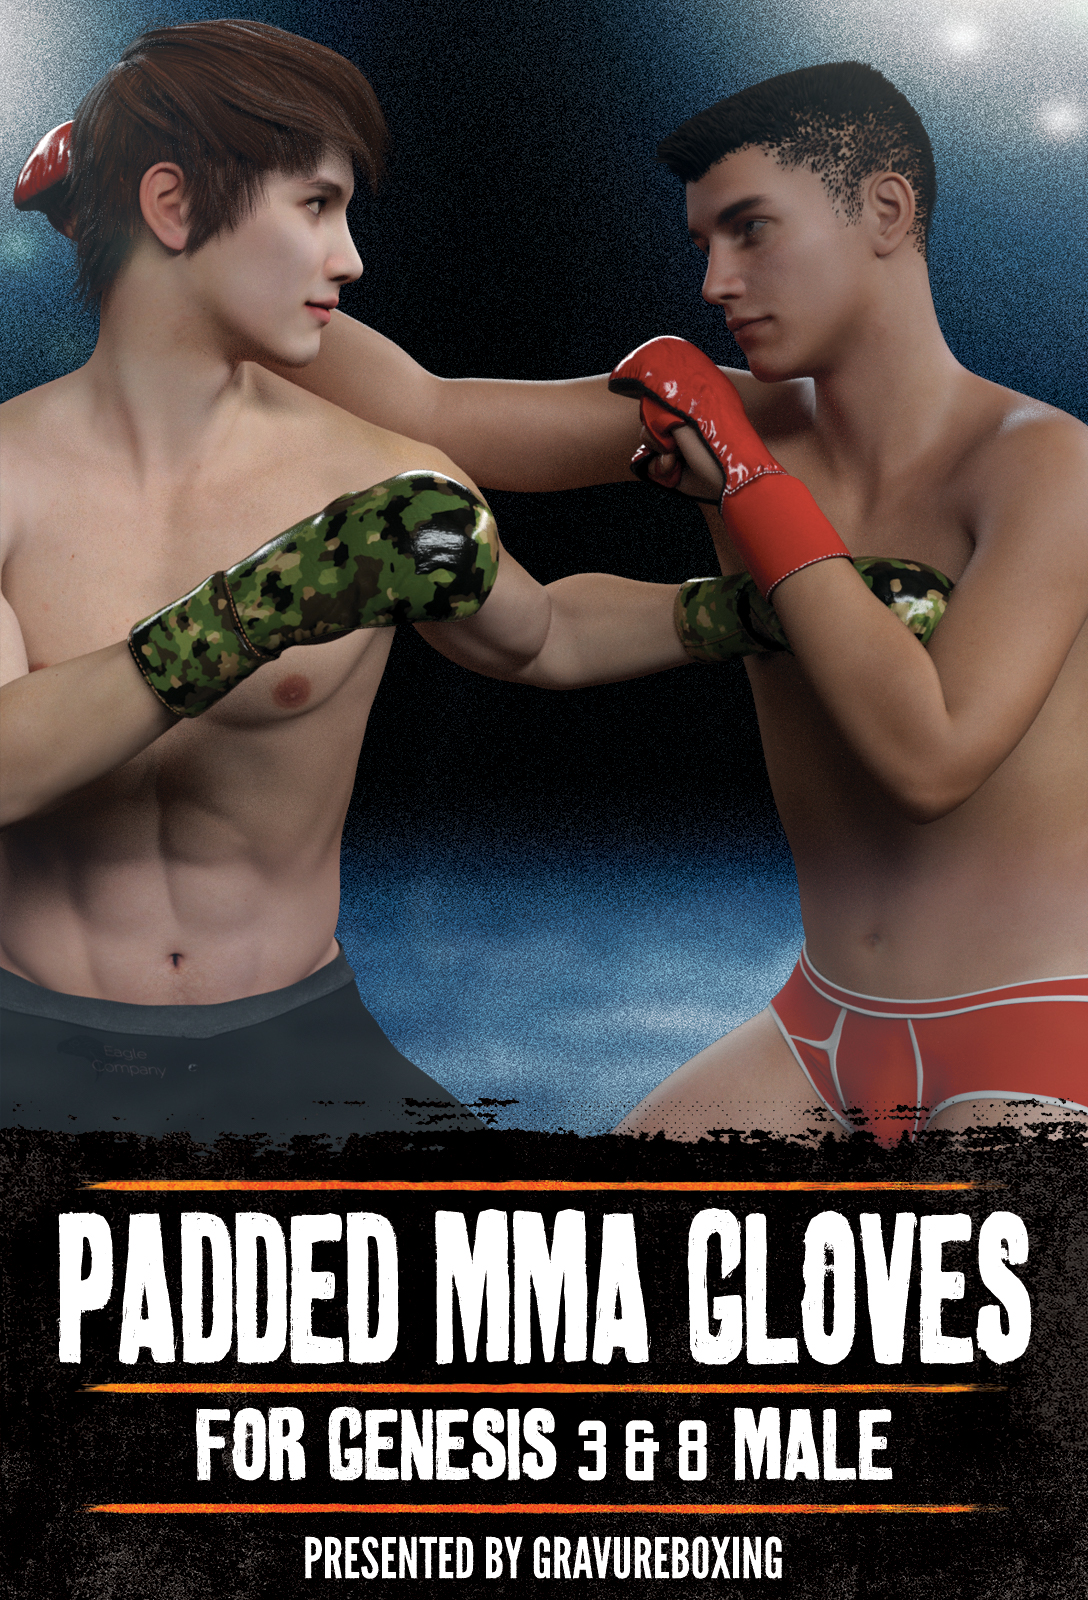 Padded MMA Gloves G3MG8M by gravureboxing